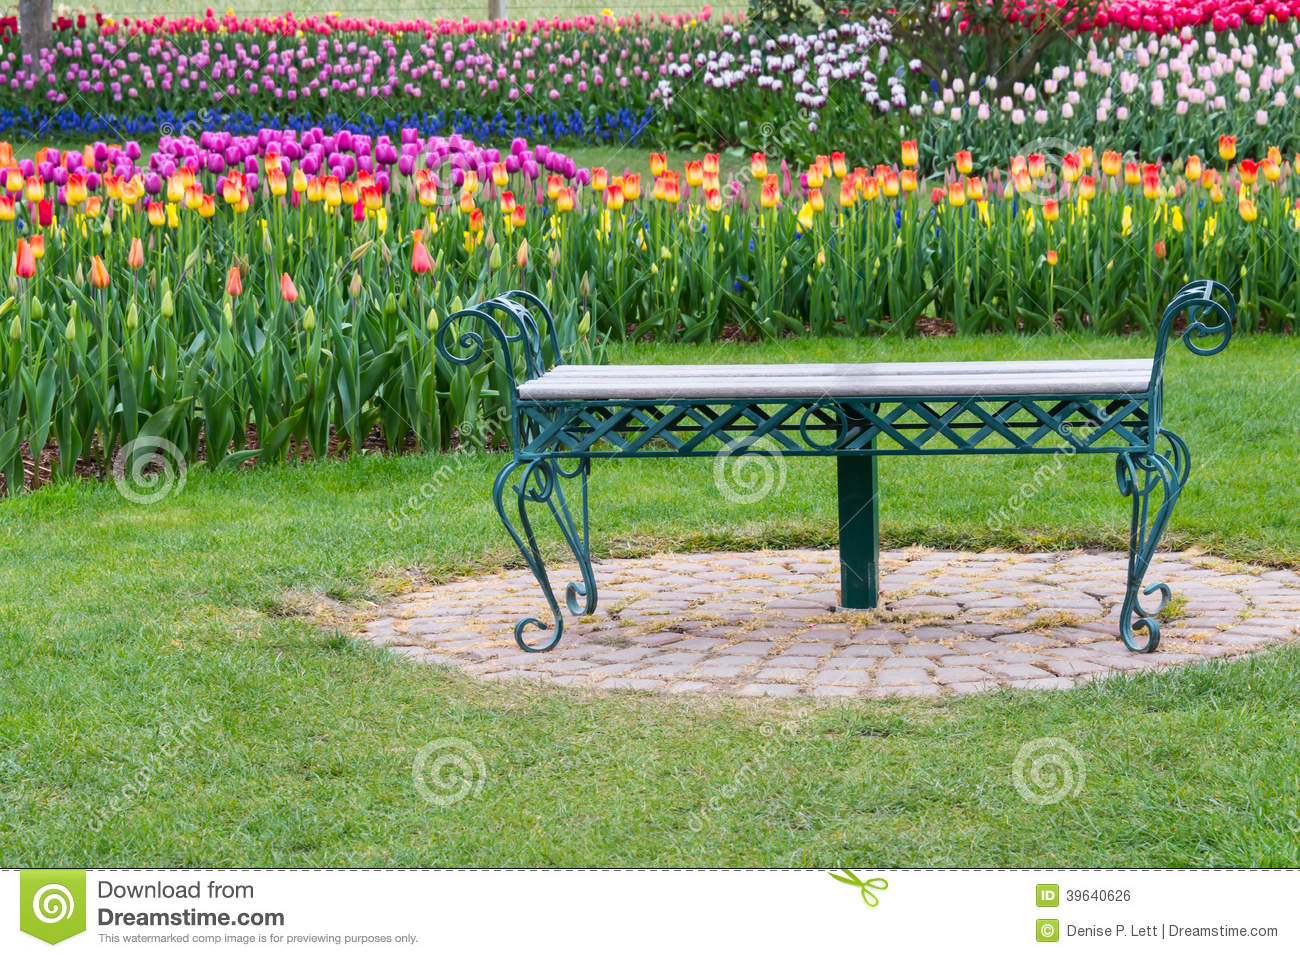 Park Bench In Tulip Flower Garden Stock Photo - Image of natural ... for Park Background With Bench  177nar